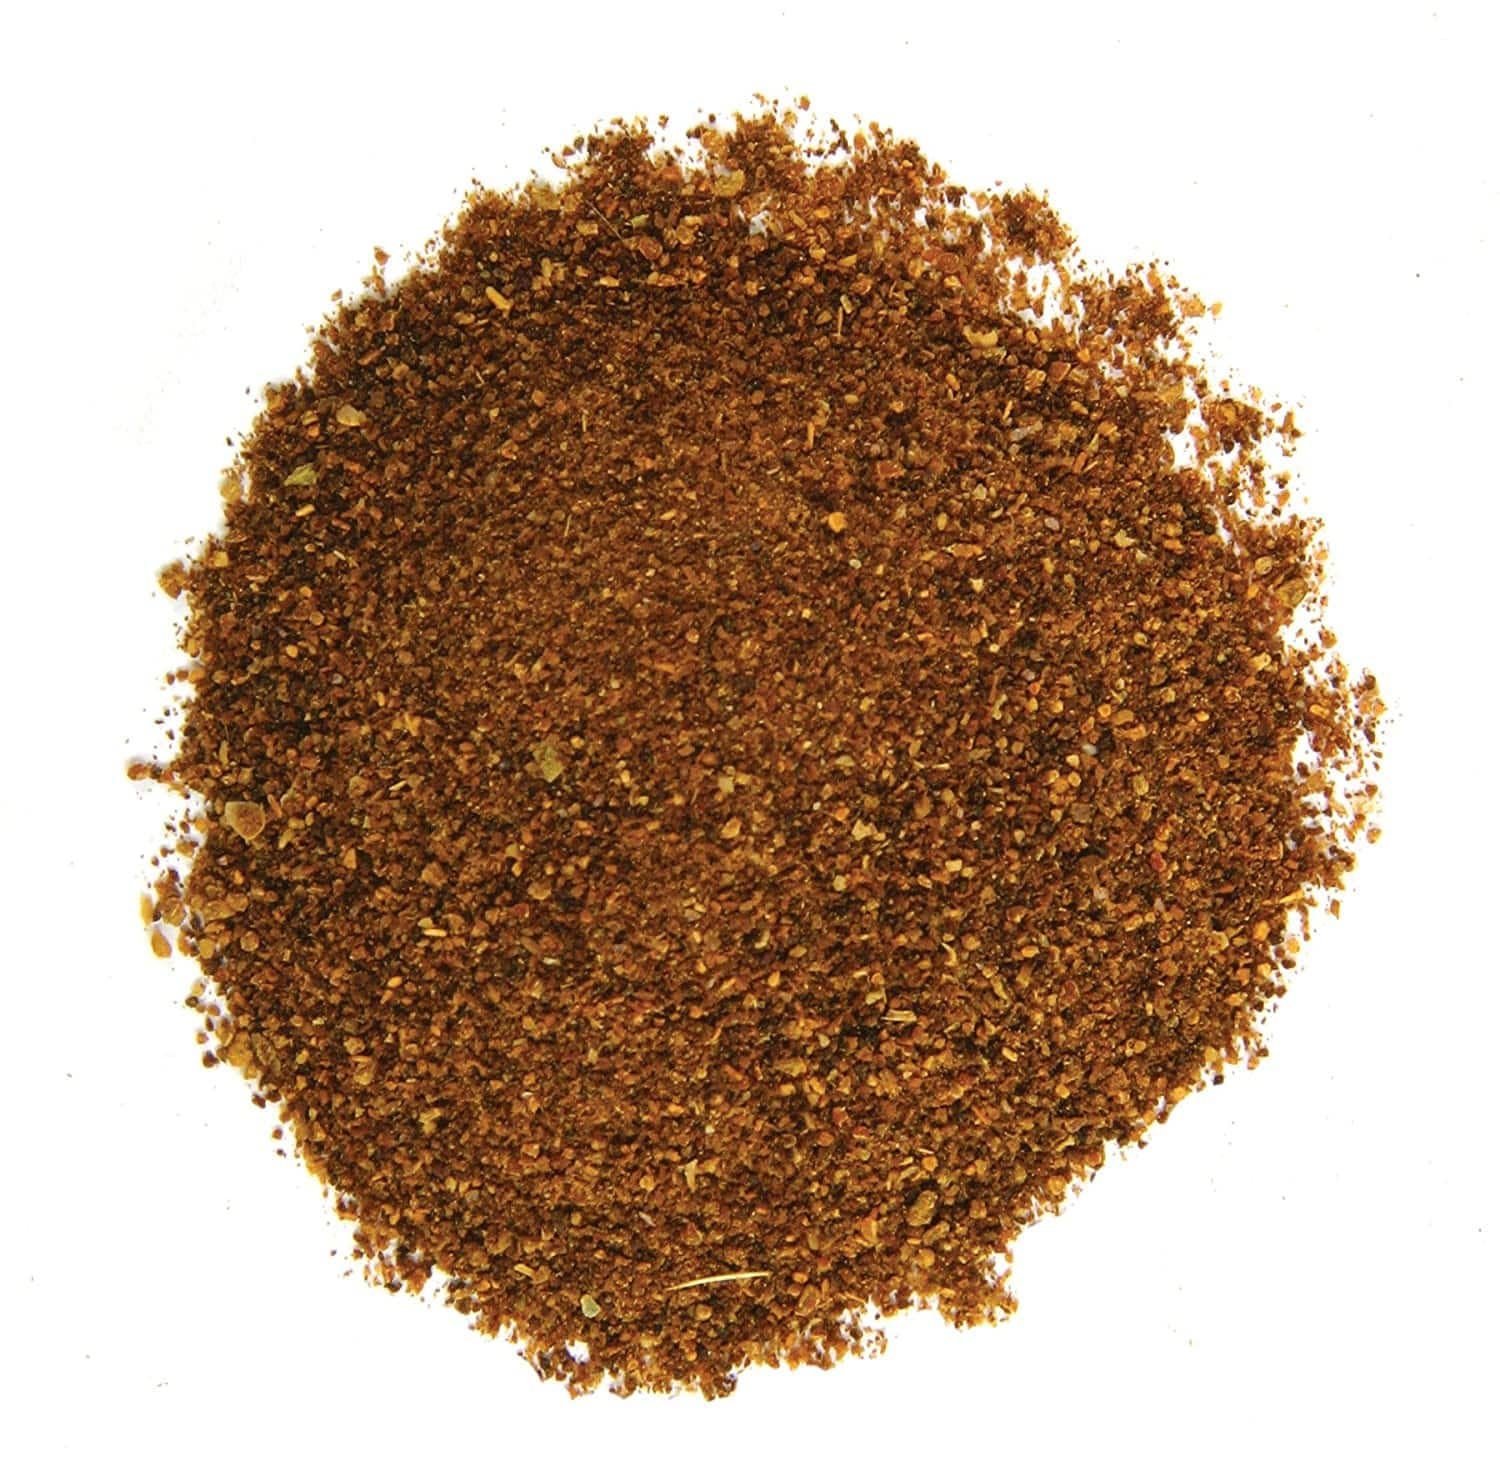 Frontier Co-op Chili Powder Blend Certified Organic, Kosher, Salt-Free, Non-irradiated 1lb $6